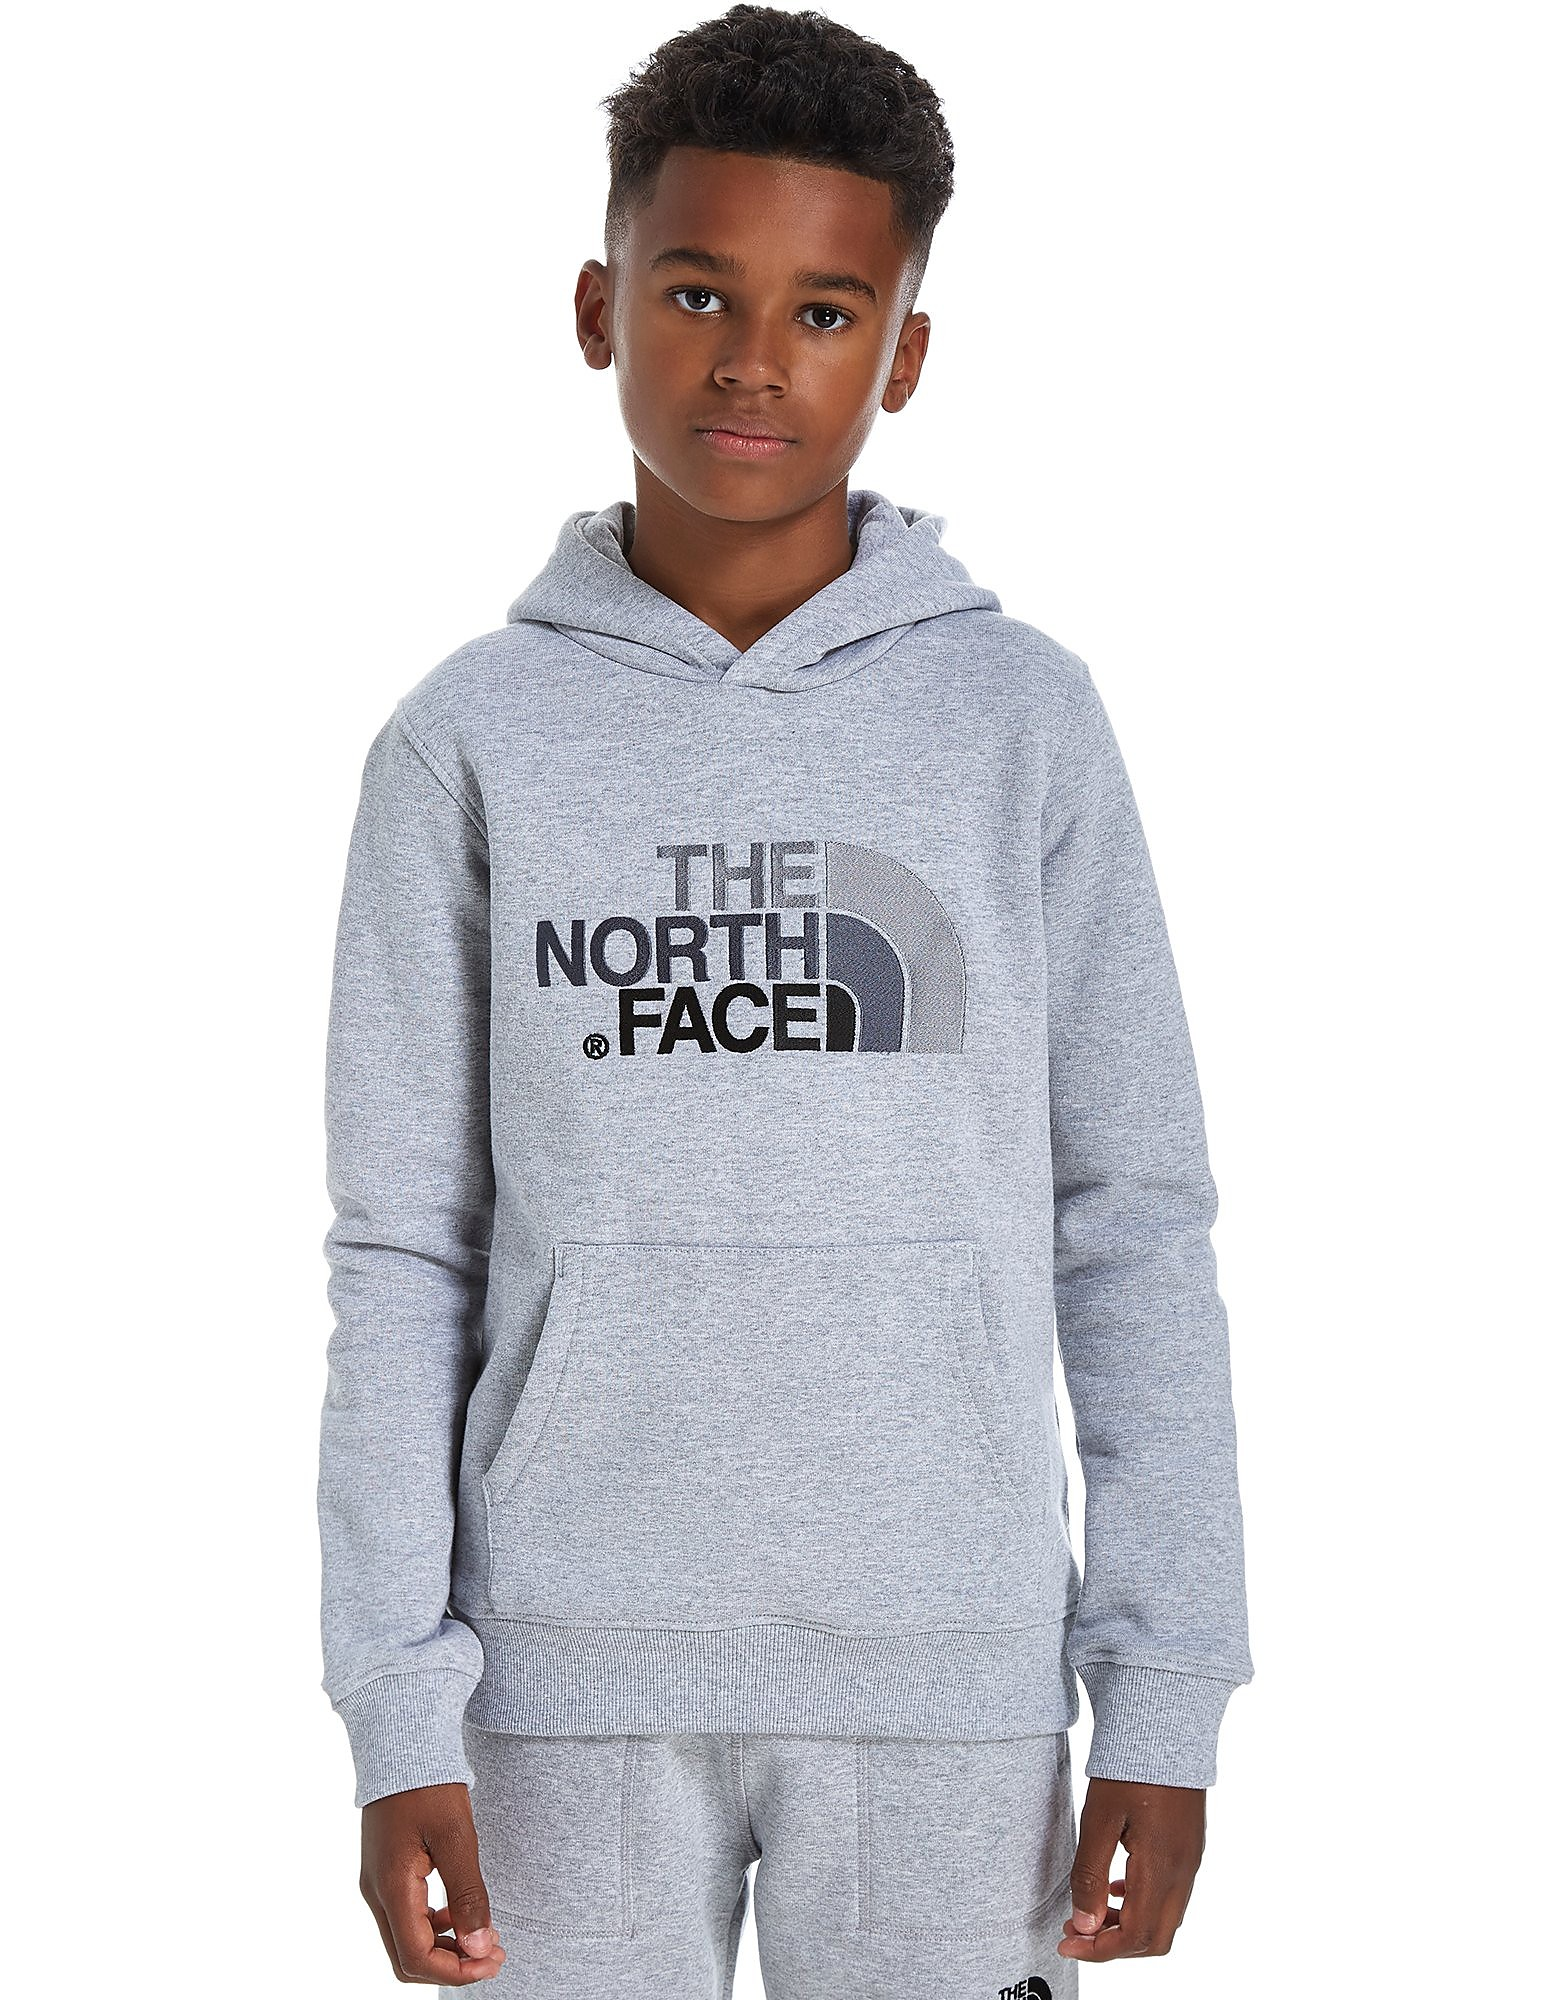 The North Face Drew Peak hoodie för juniorer